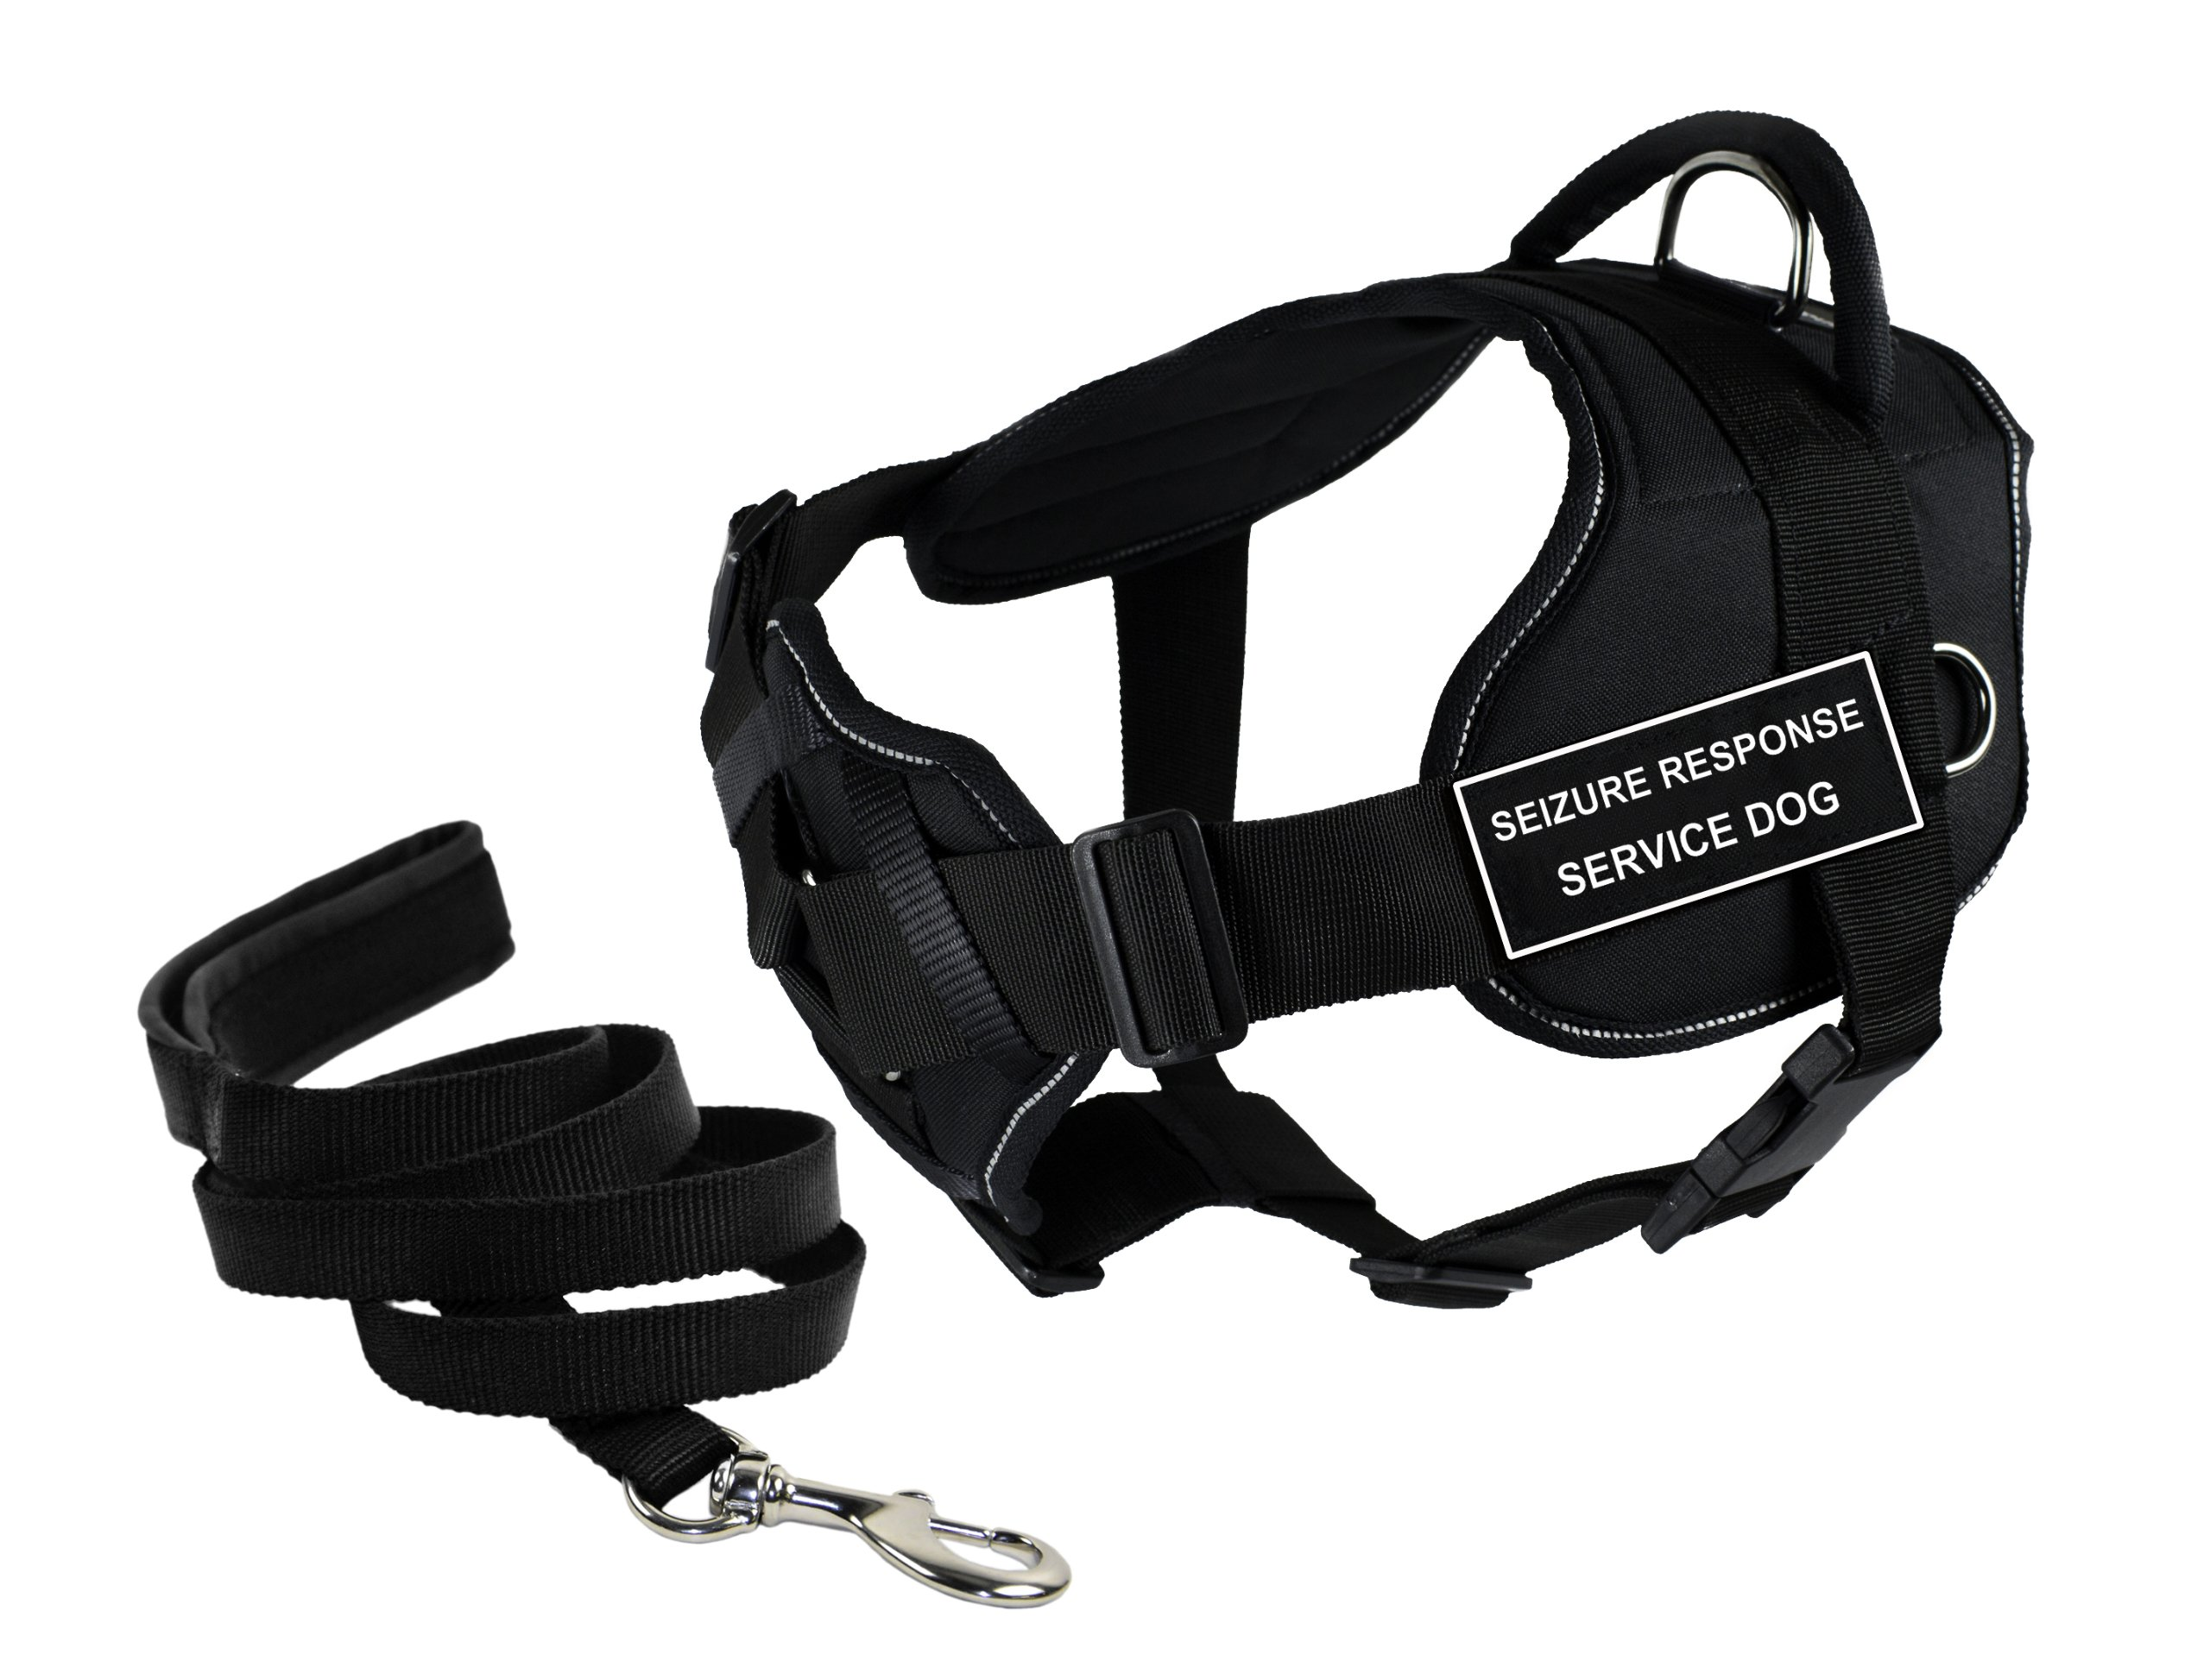 Dean & Tyler's DT Fun Chest Support ''SEIZURE RESPONSE SERVICE DOG'' Harness with Reflective Trim, X-Large, and 6 ft Padded Puppy Leash.